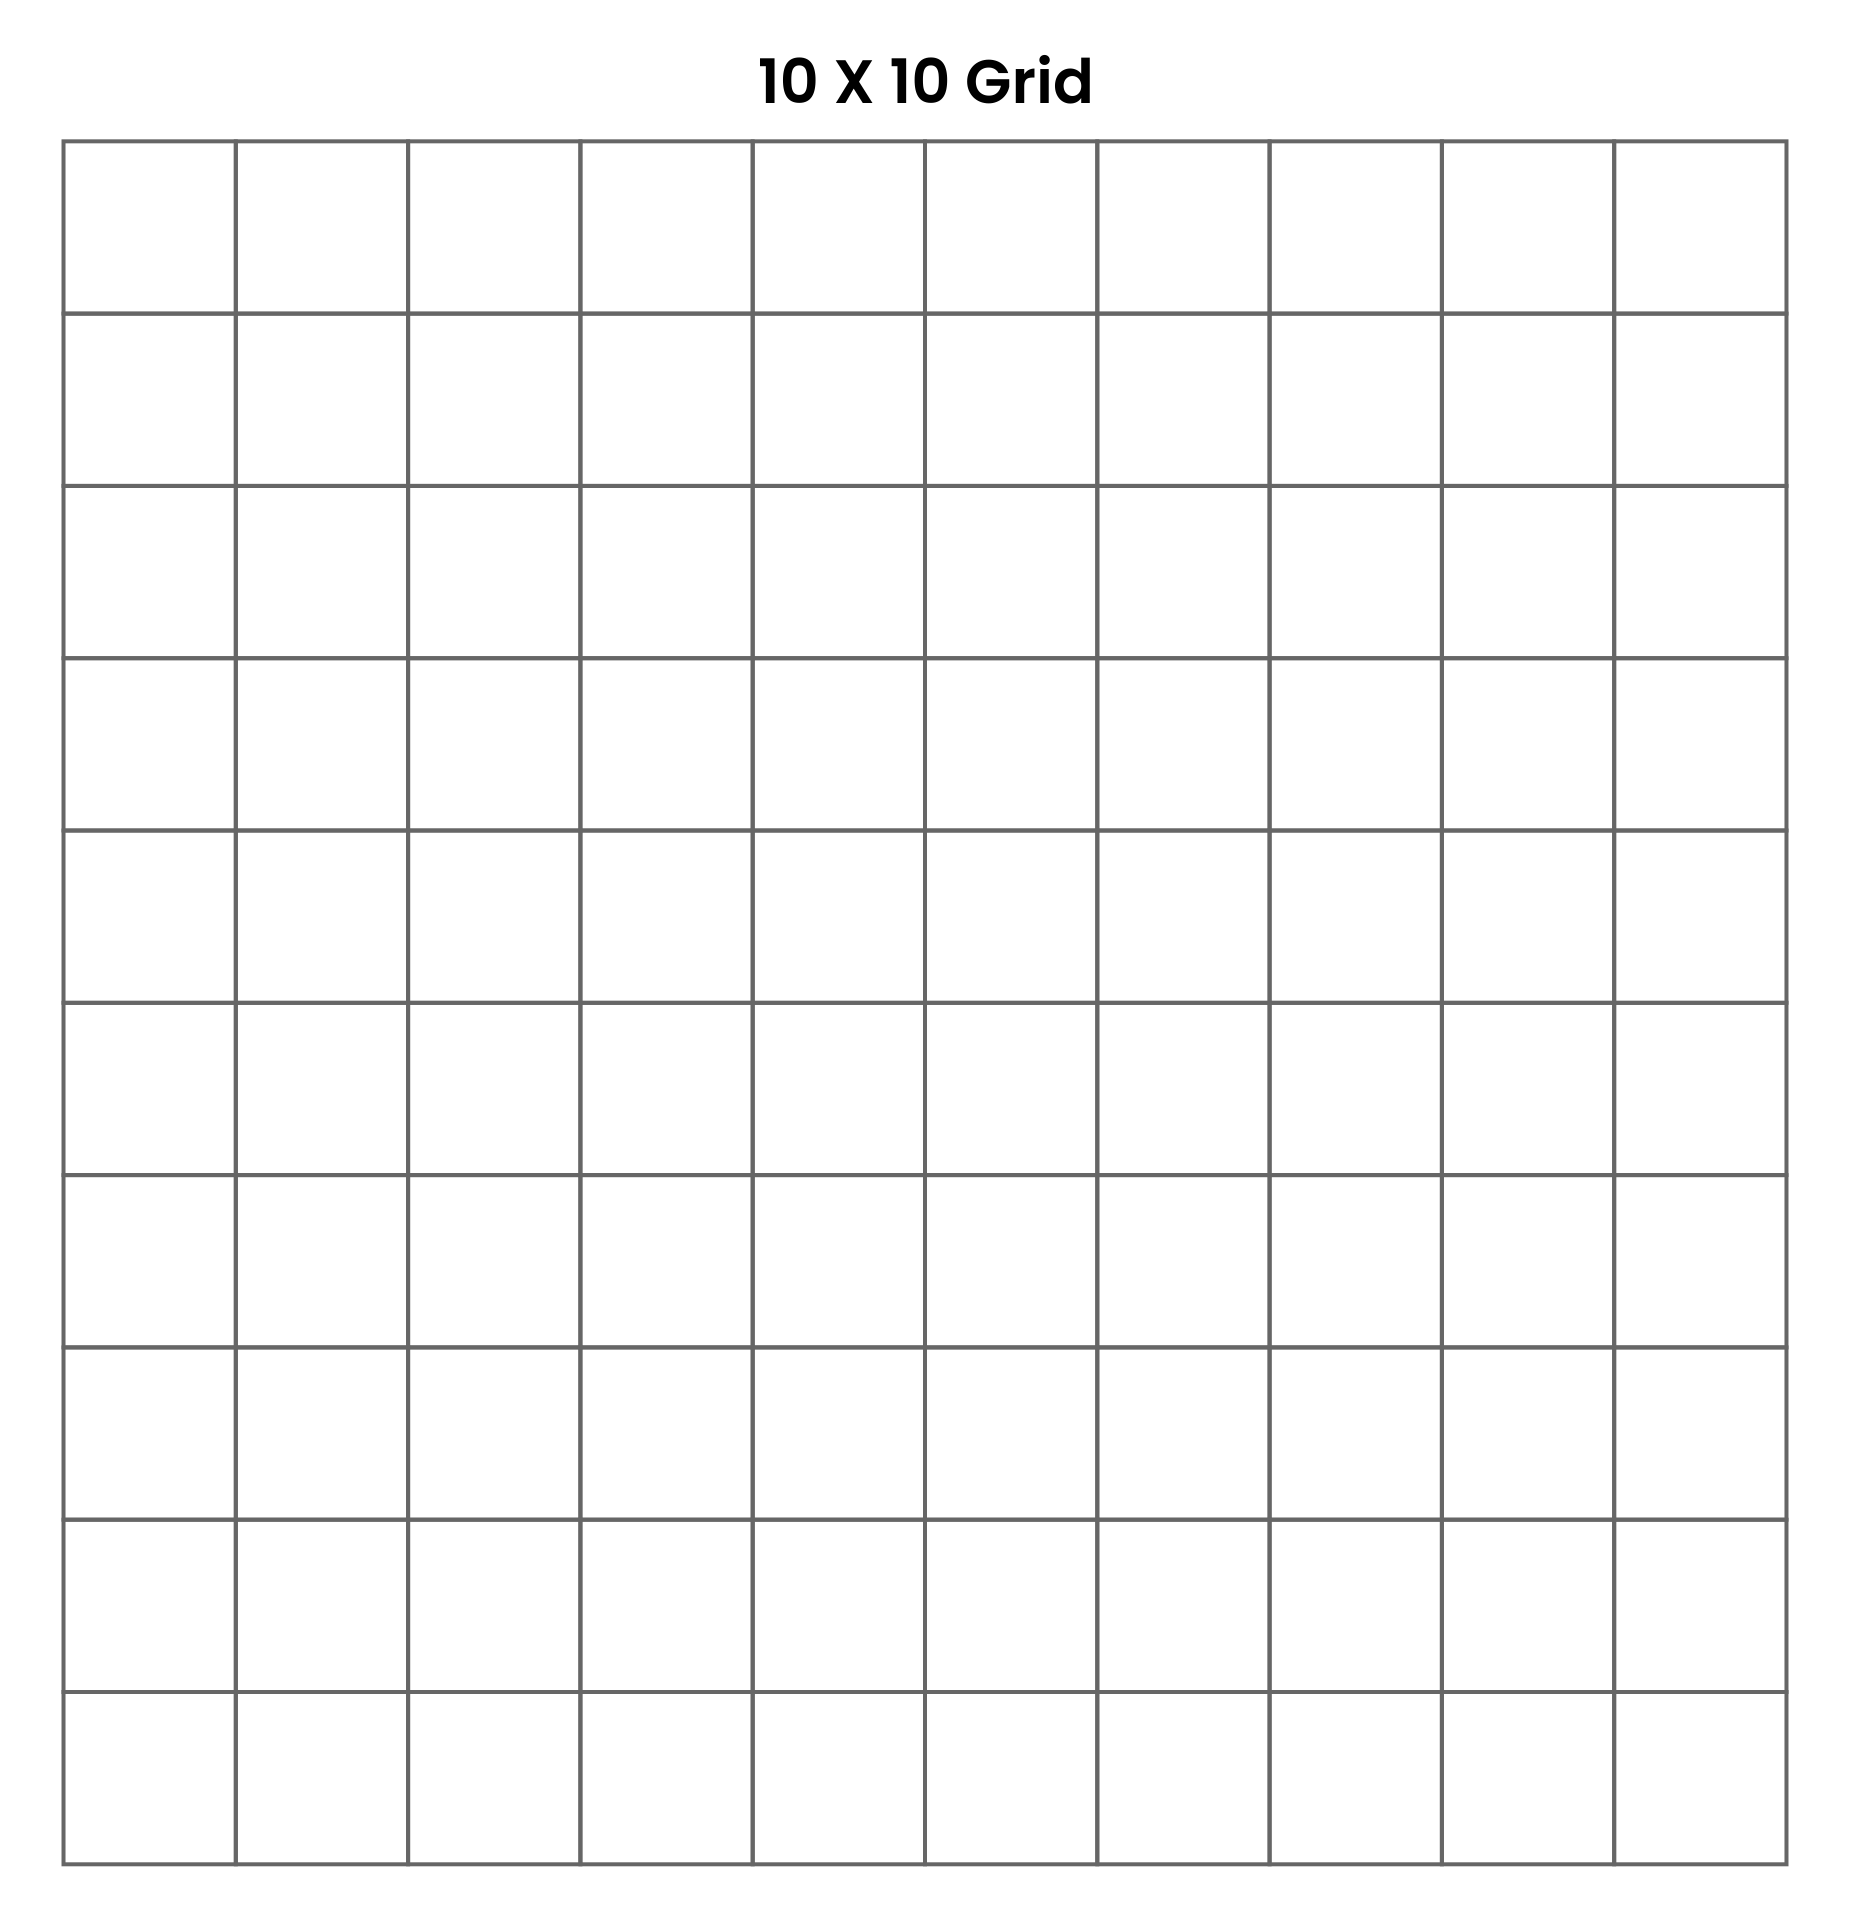 10 X 10 Coordinate Grid Pictures to Pin on Pinterest ...